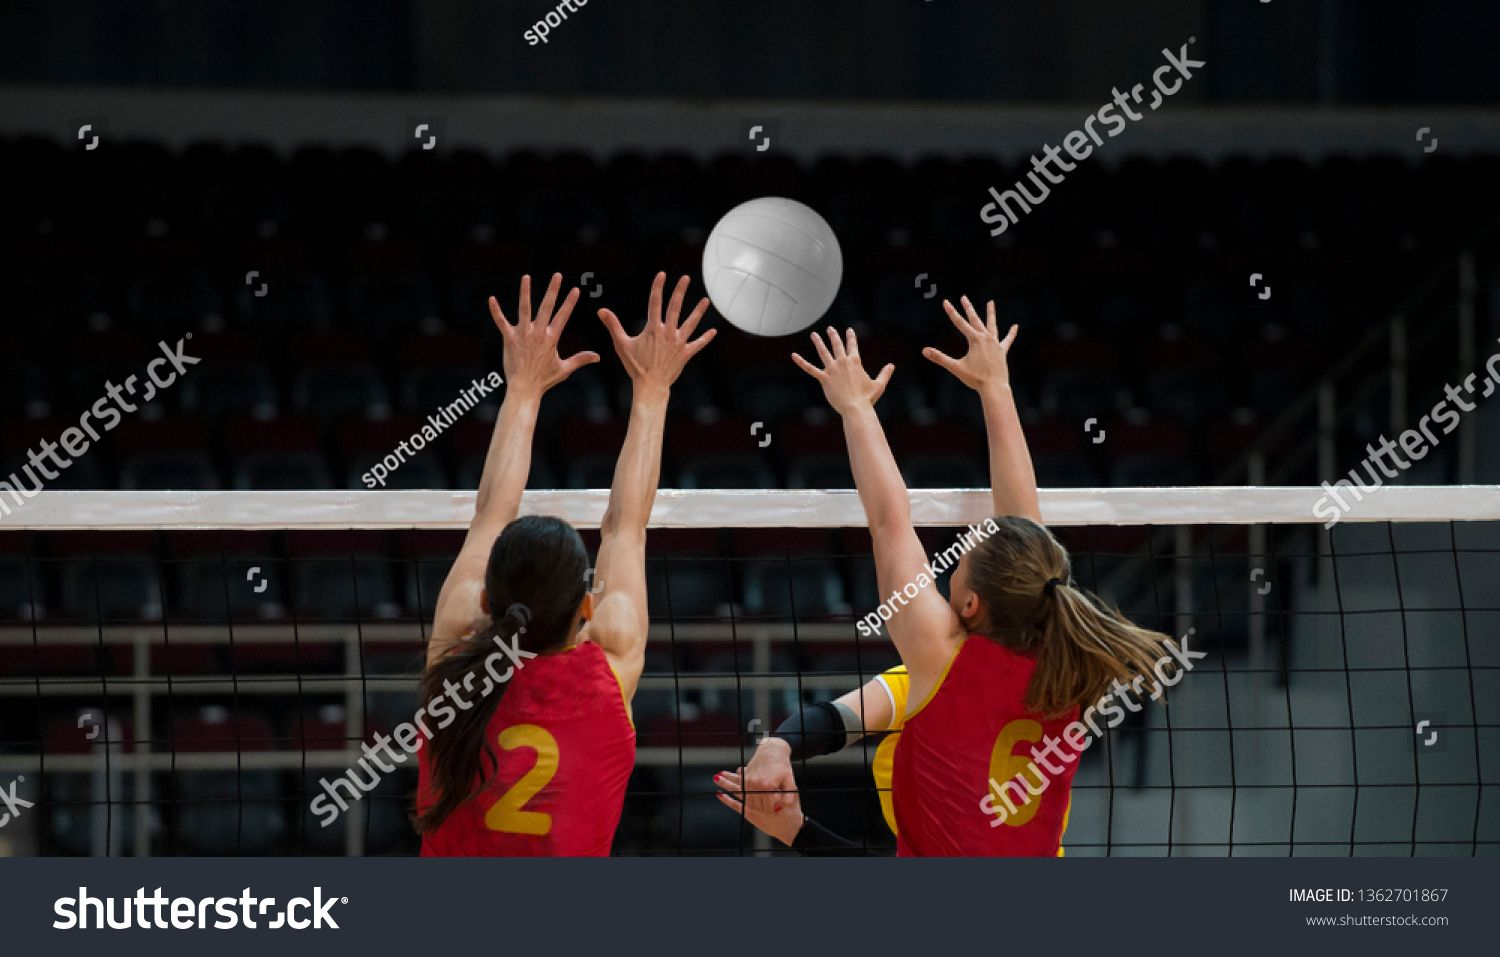 Volleyball Game Sport With Group Of Girls Indoor Ad Spon Sport Game Volleyball Indoor Volleyball Games Volleyball Sports